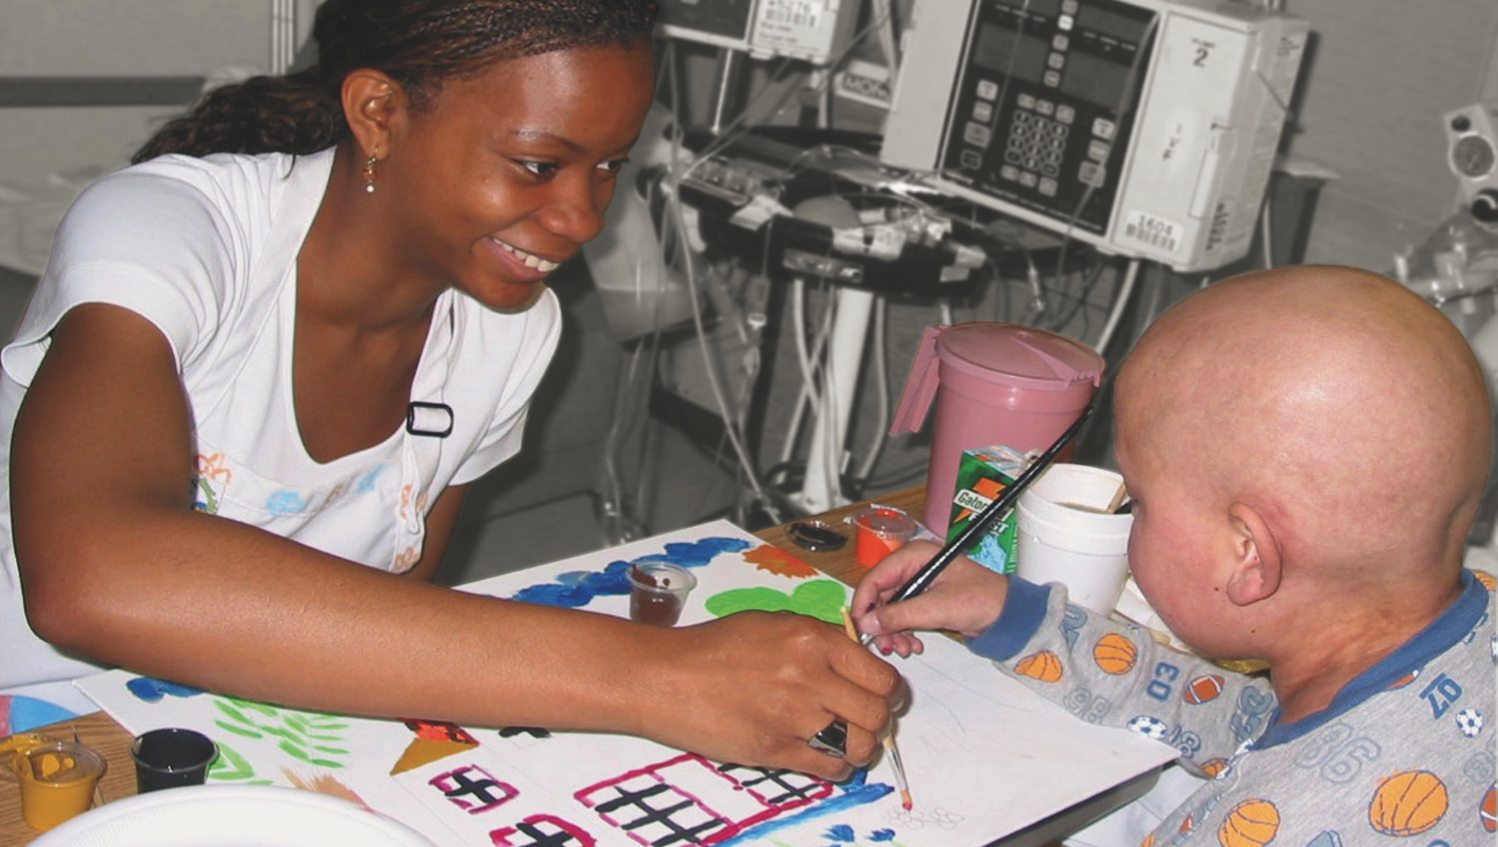 Art therapist painting with pediatric patient